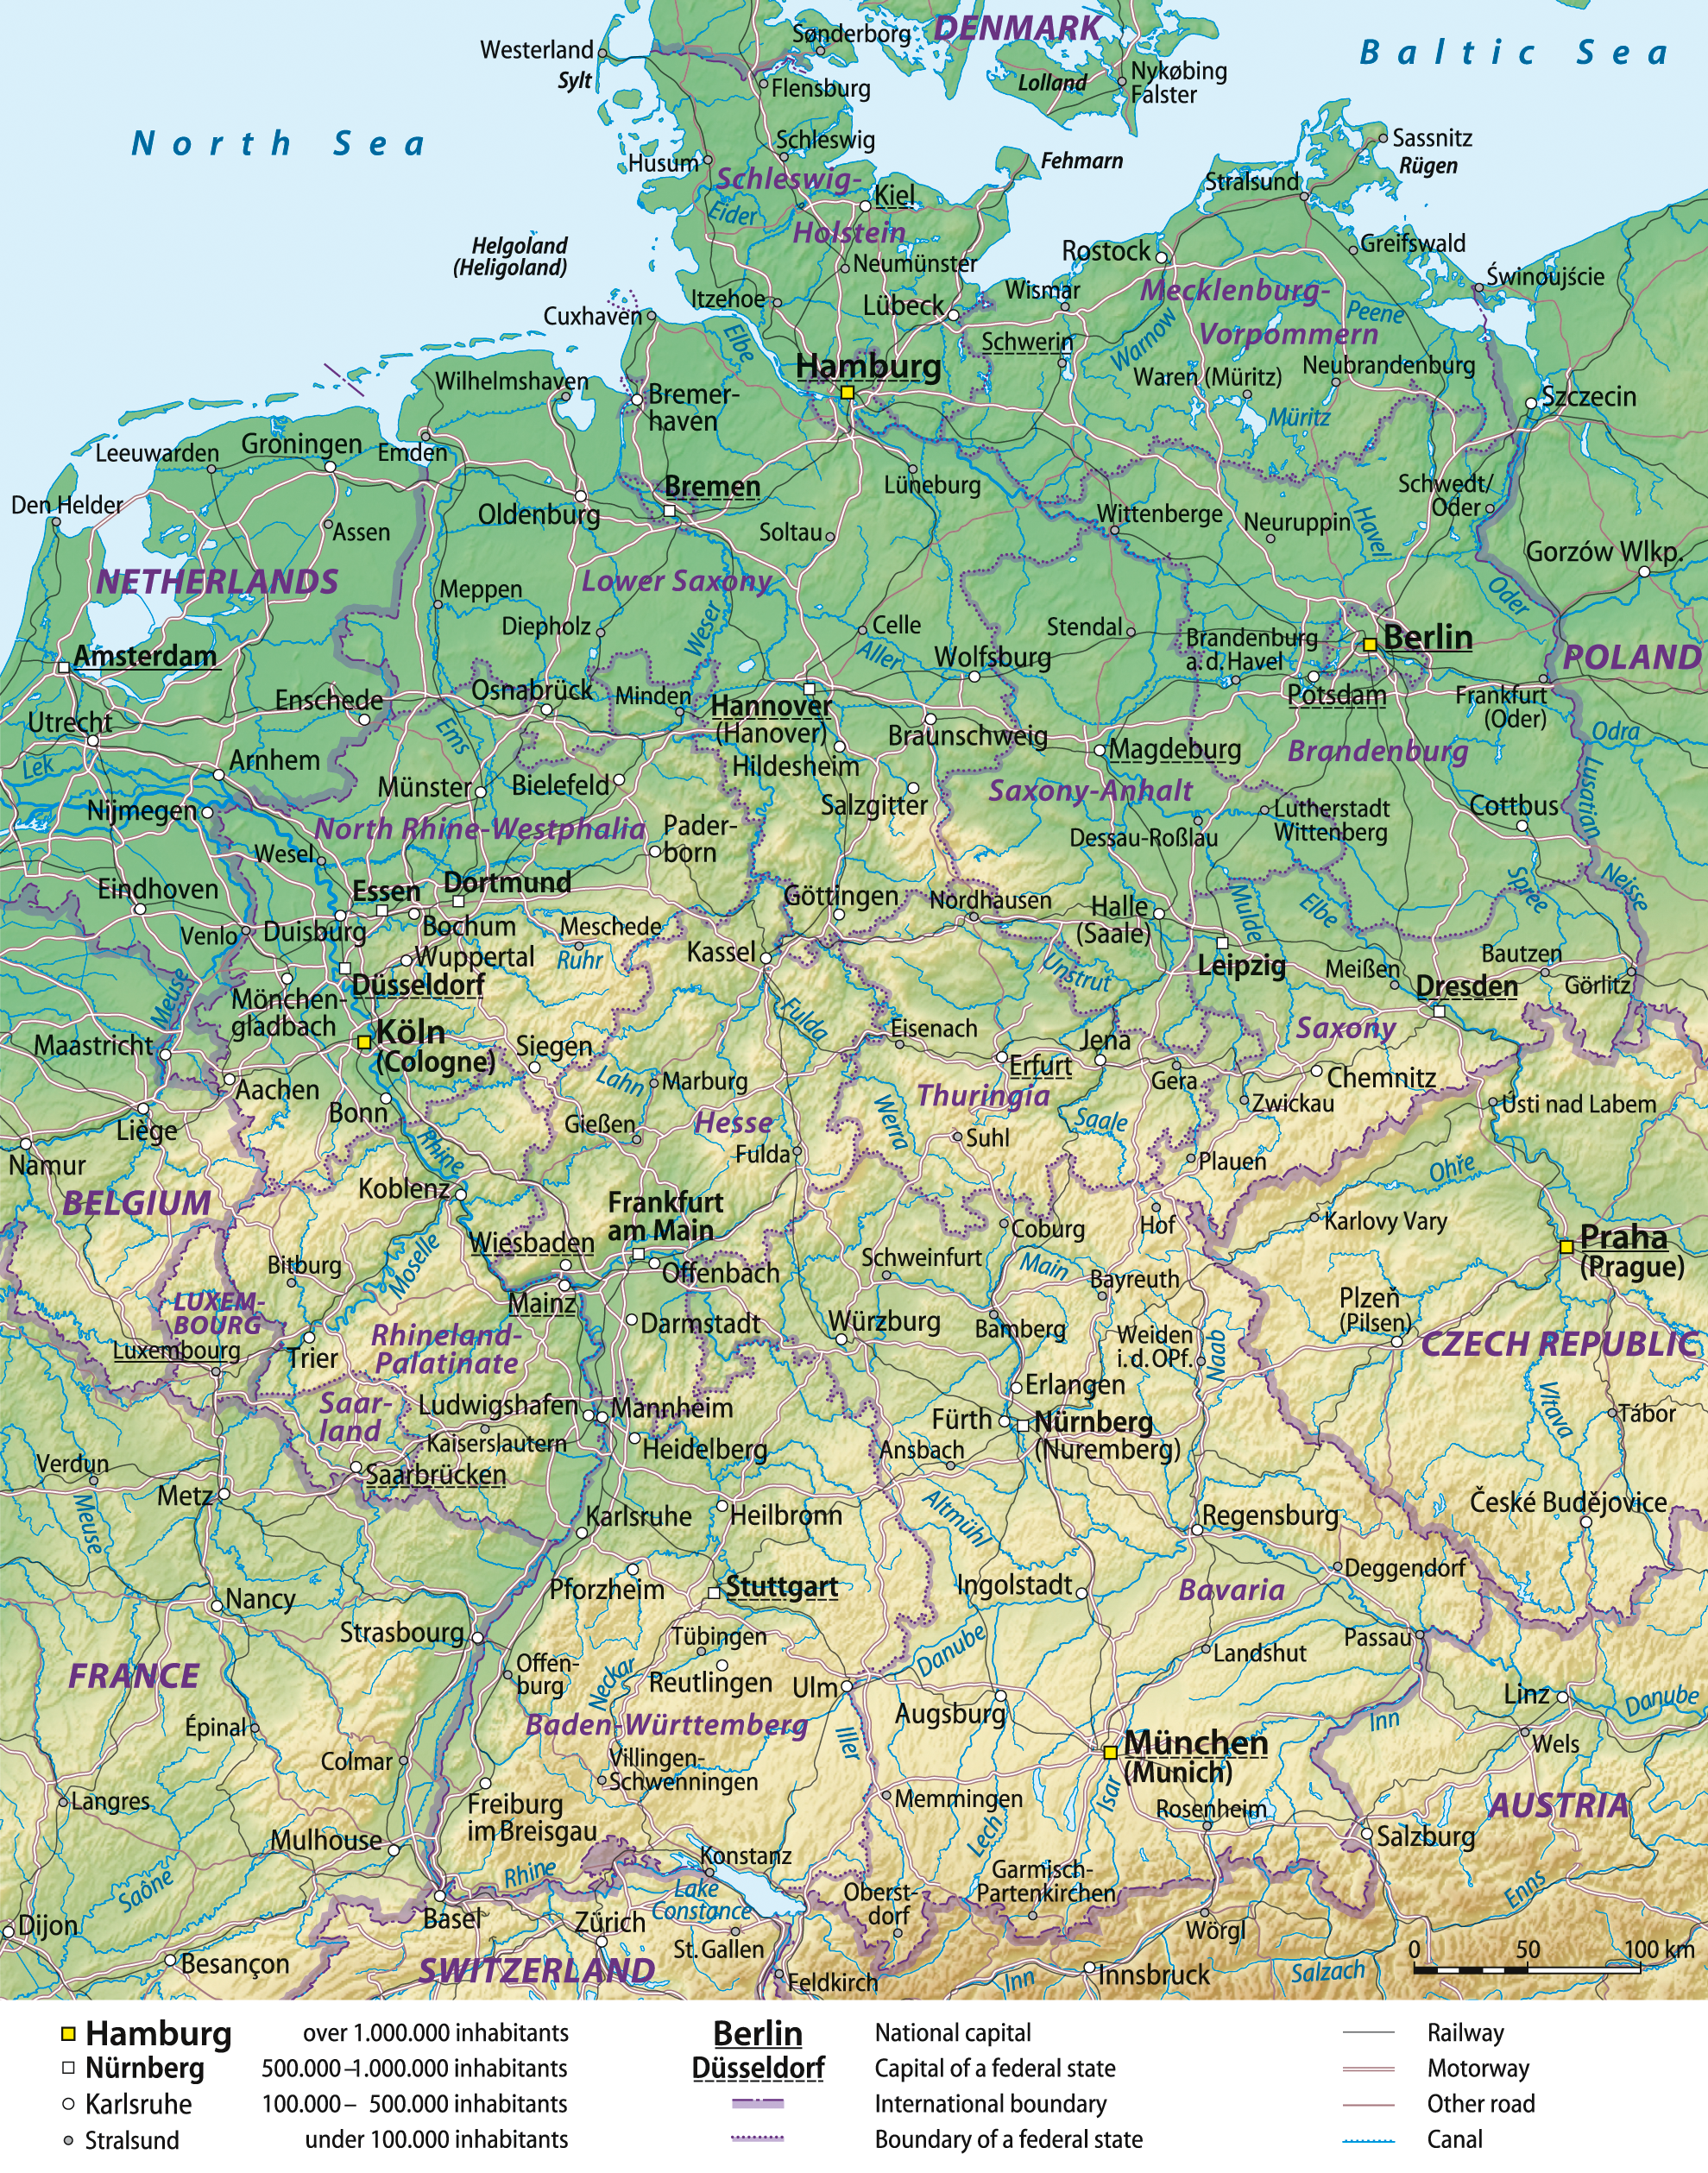 an enlargeable map of the federal republic of germany